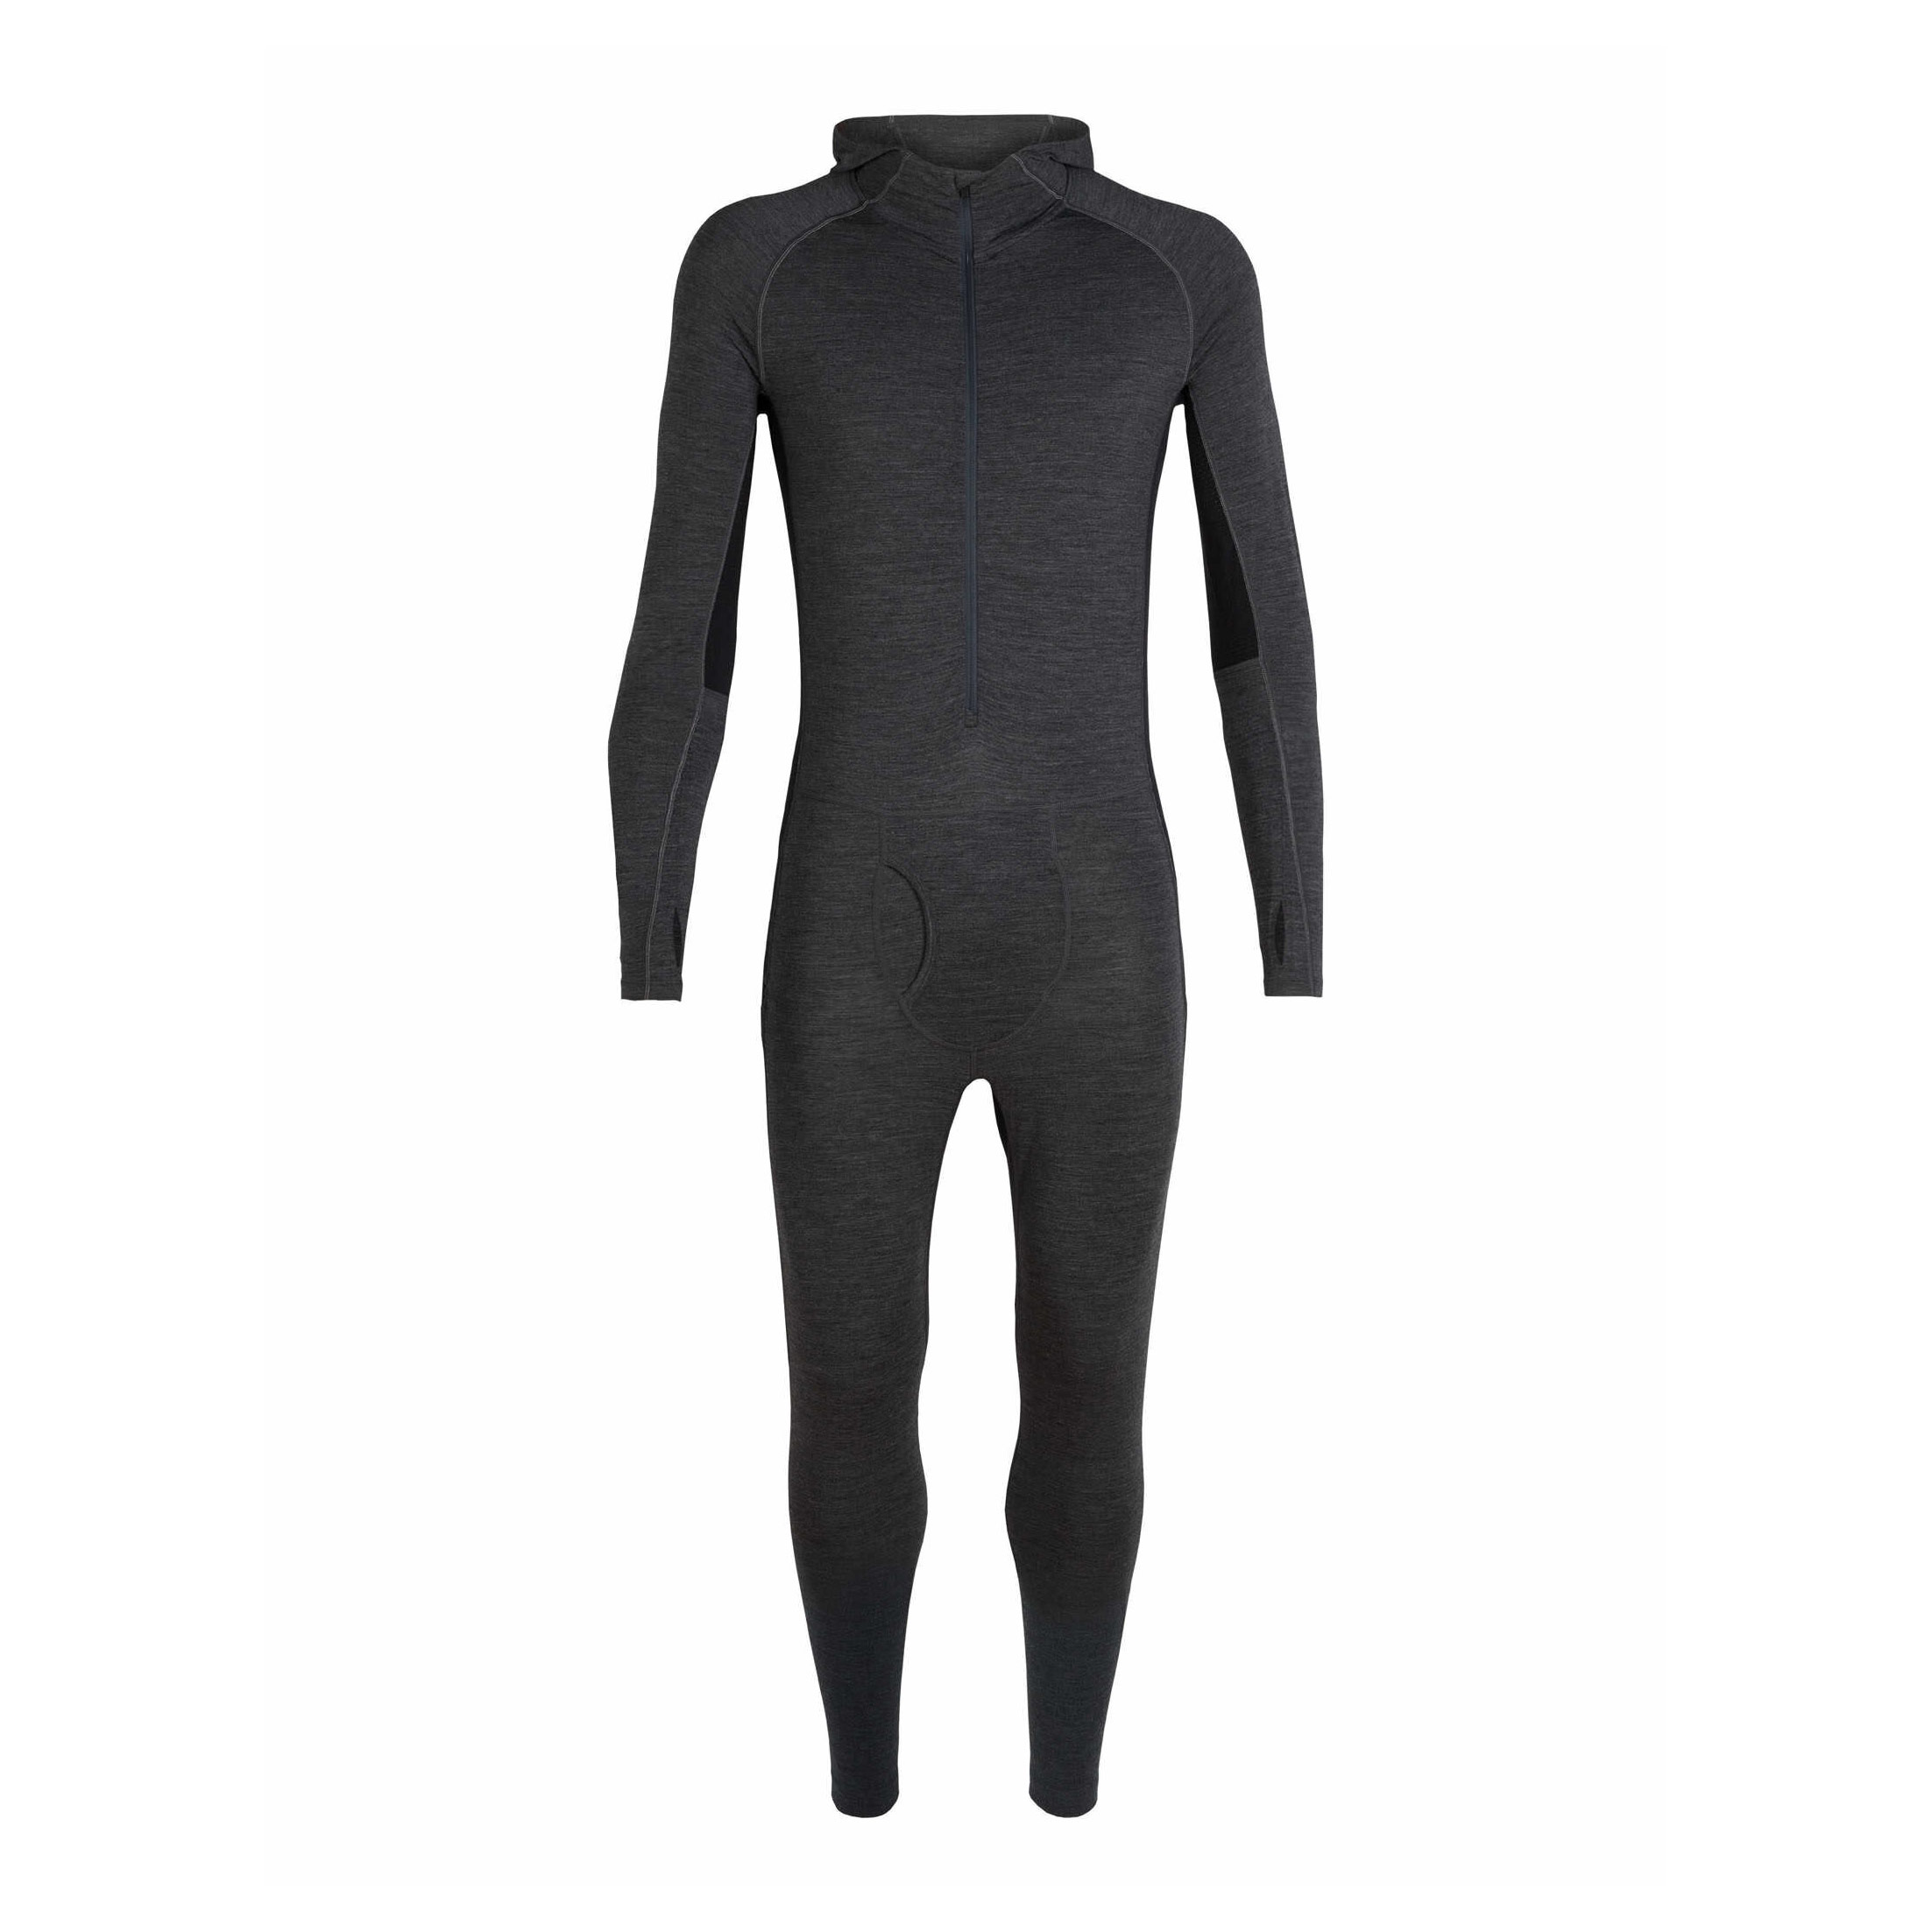 200 Zone One Sheep Suit - Men's